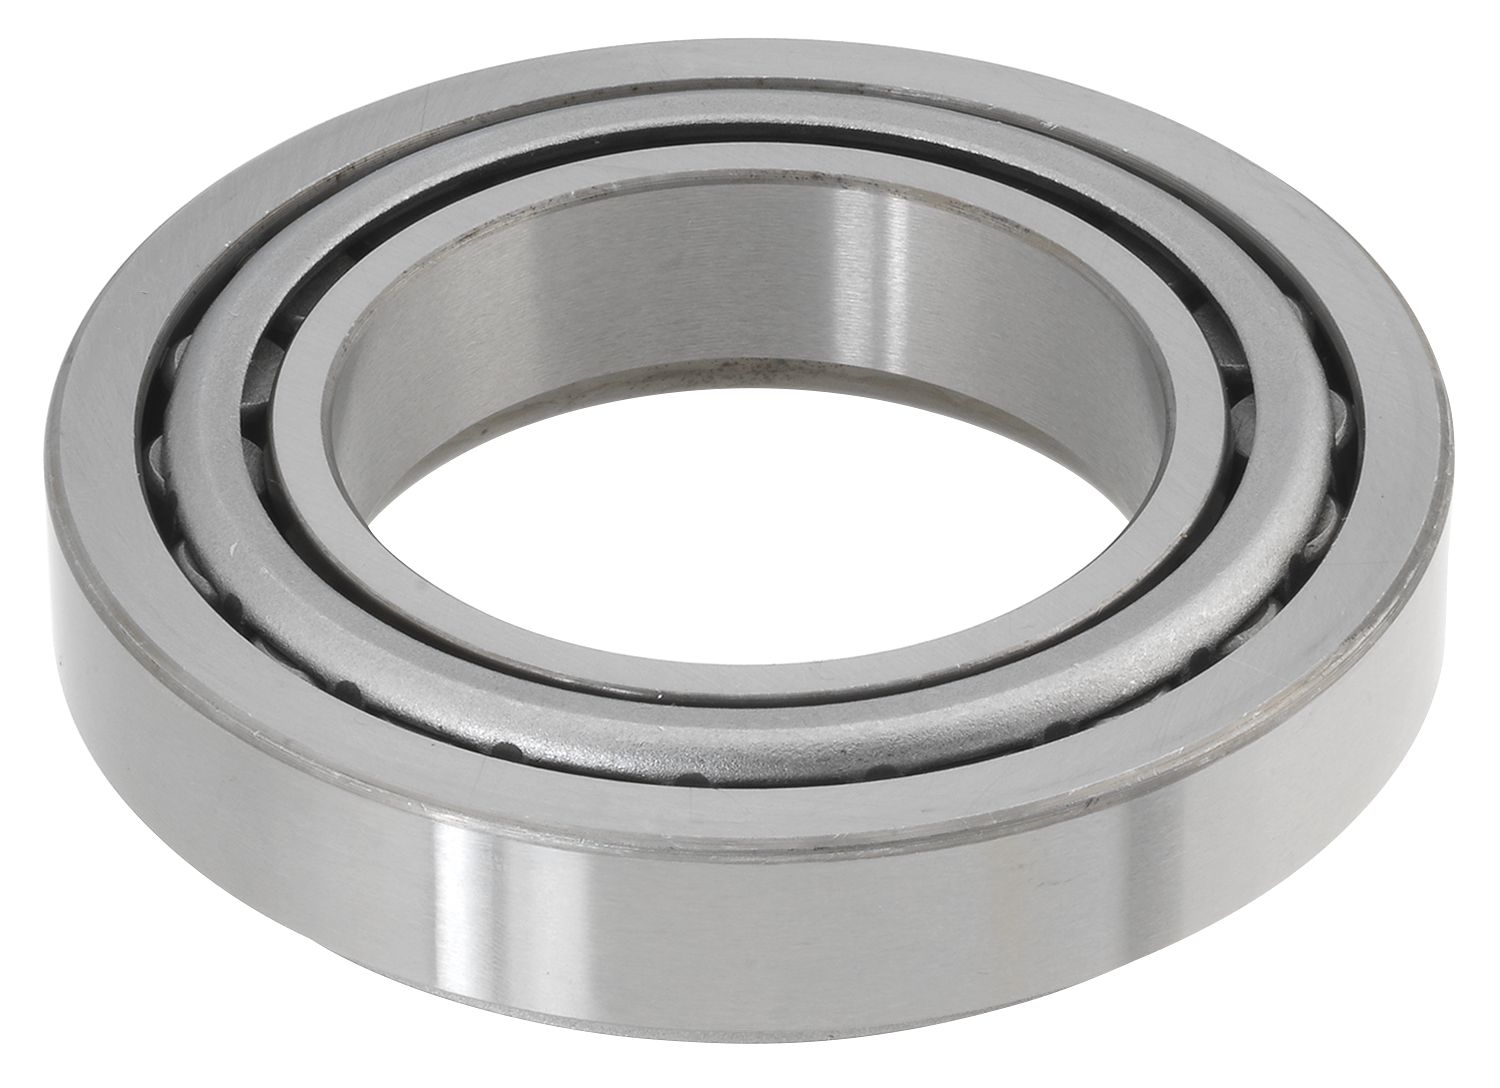 SKF (CHICAGO RAWHIDE) - Axle Differential Bearing - SKF BR101